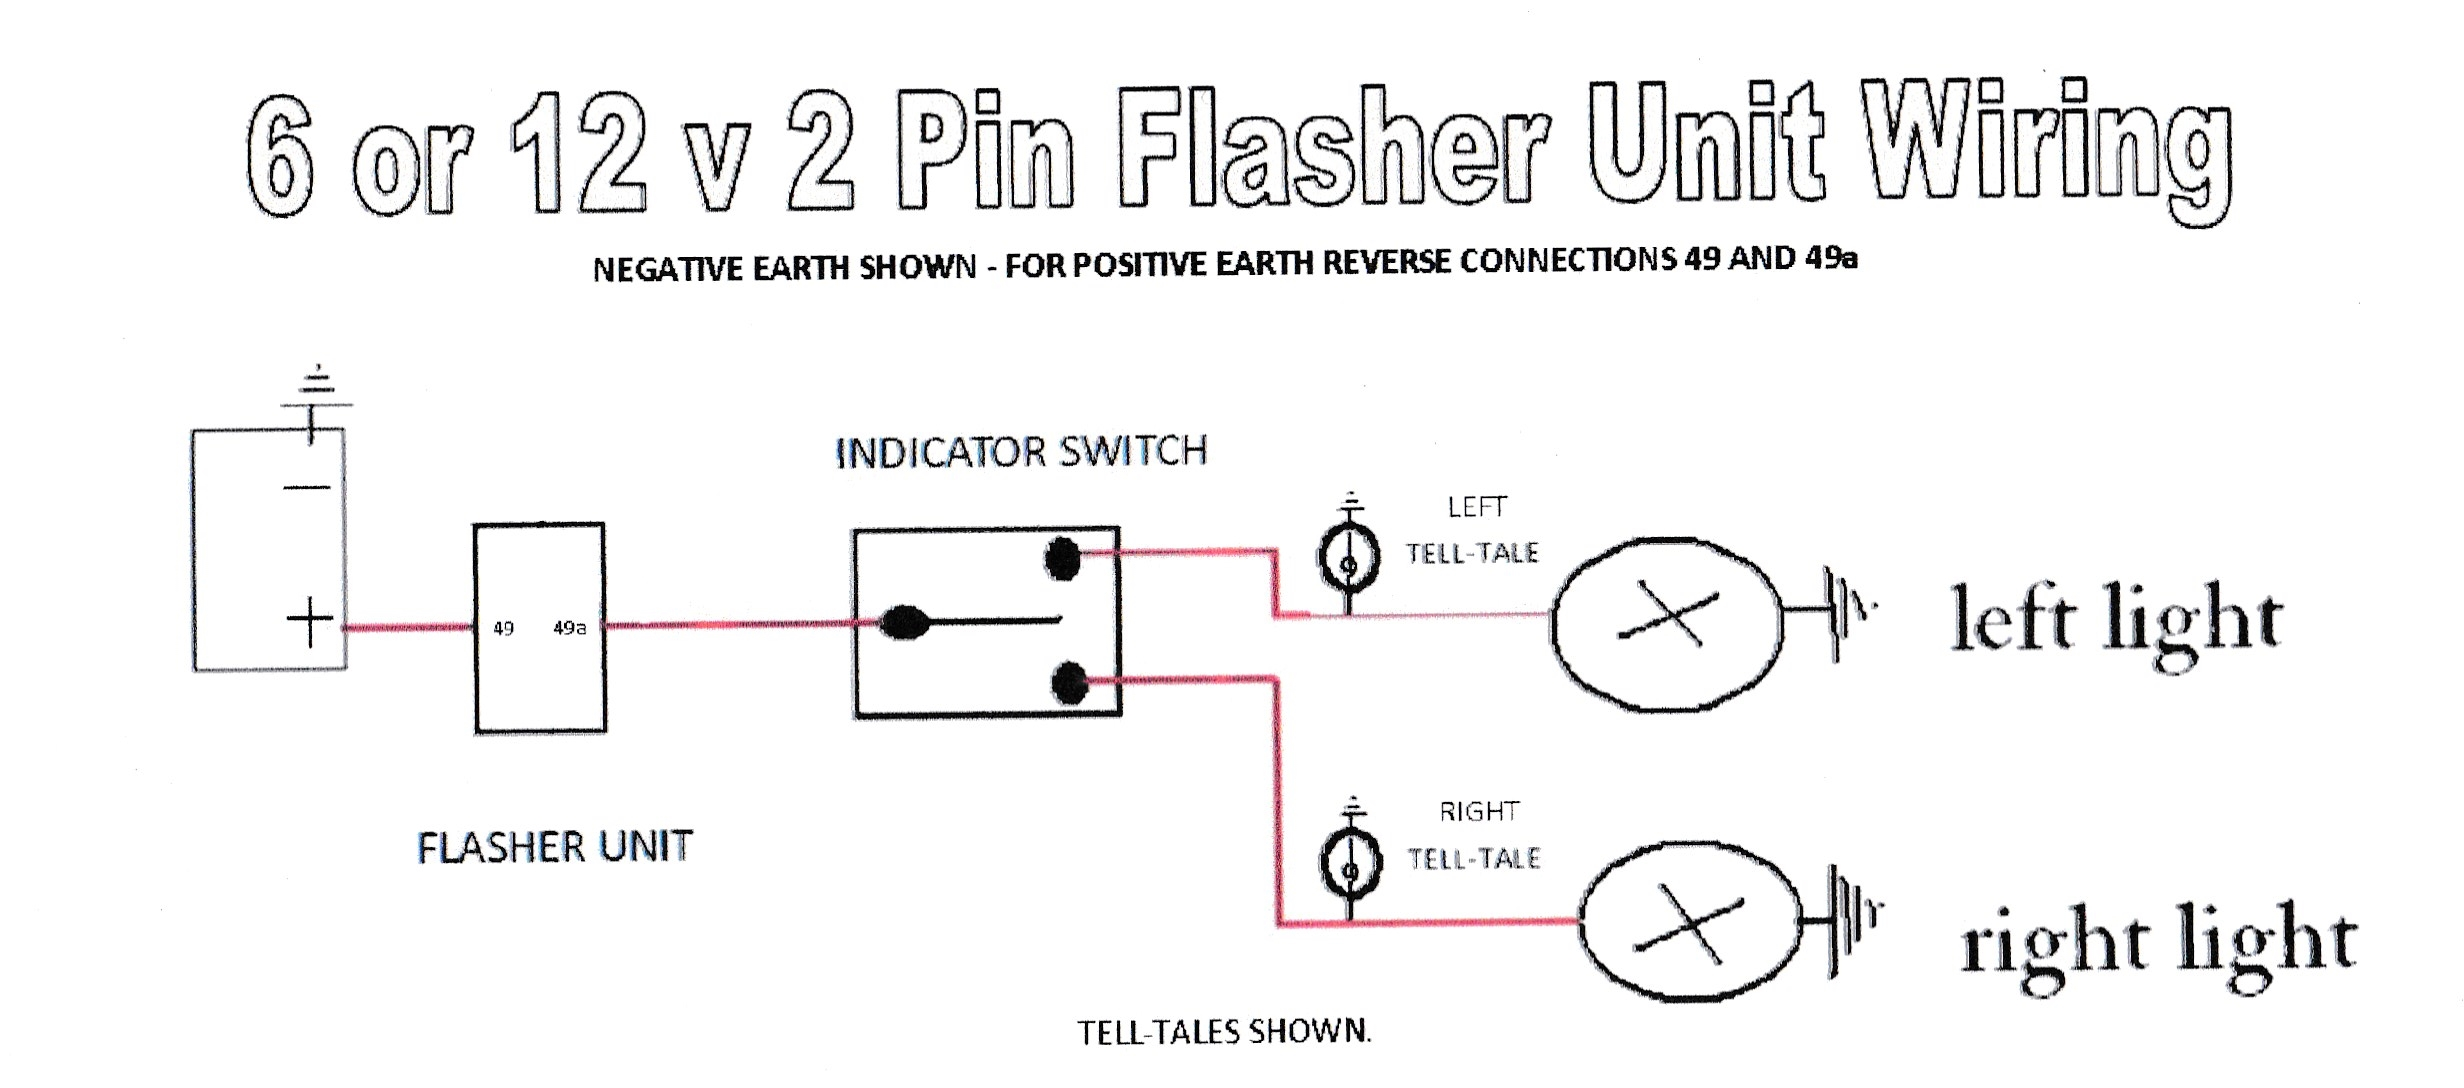 Wiring Led Flasher Relay - Diagram Data Schema on 12v flasher circuit diagram, 4 prong toggle switch wiring diagram, 4 pin relay wiring diagram, 4 pin flasher relay diagram, 12v flasher relay wiring diagram, turn signal flasher diagram, generator interlock diagram, universal flasher wiring diagram, hazard flasher circuit diagram,